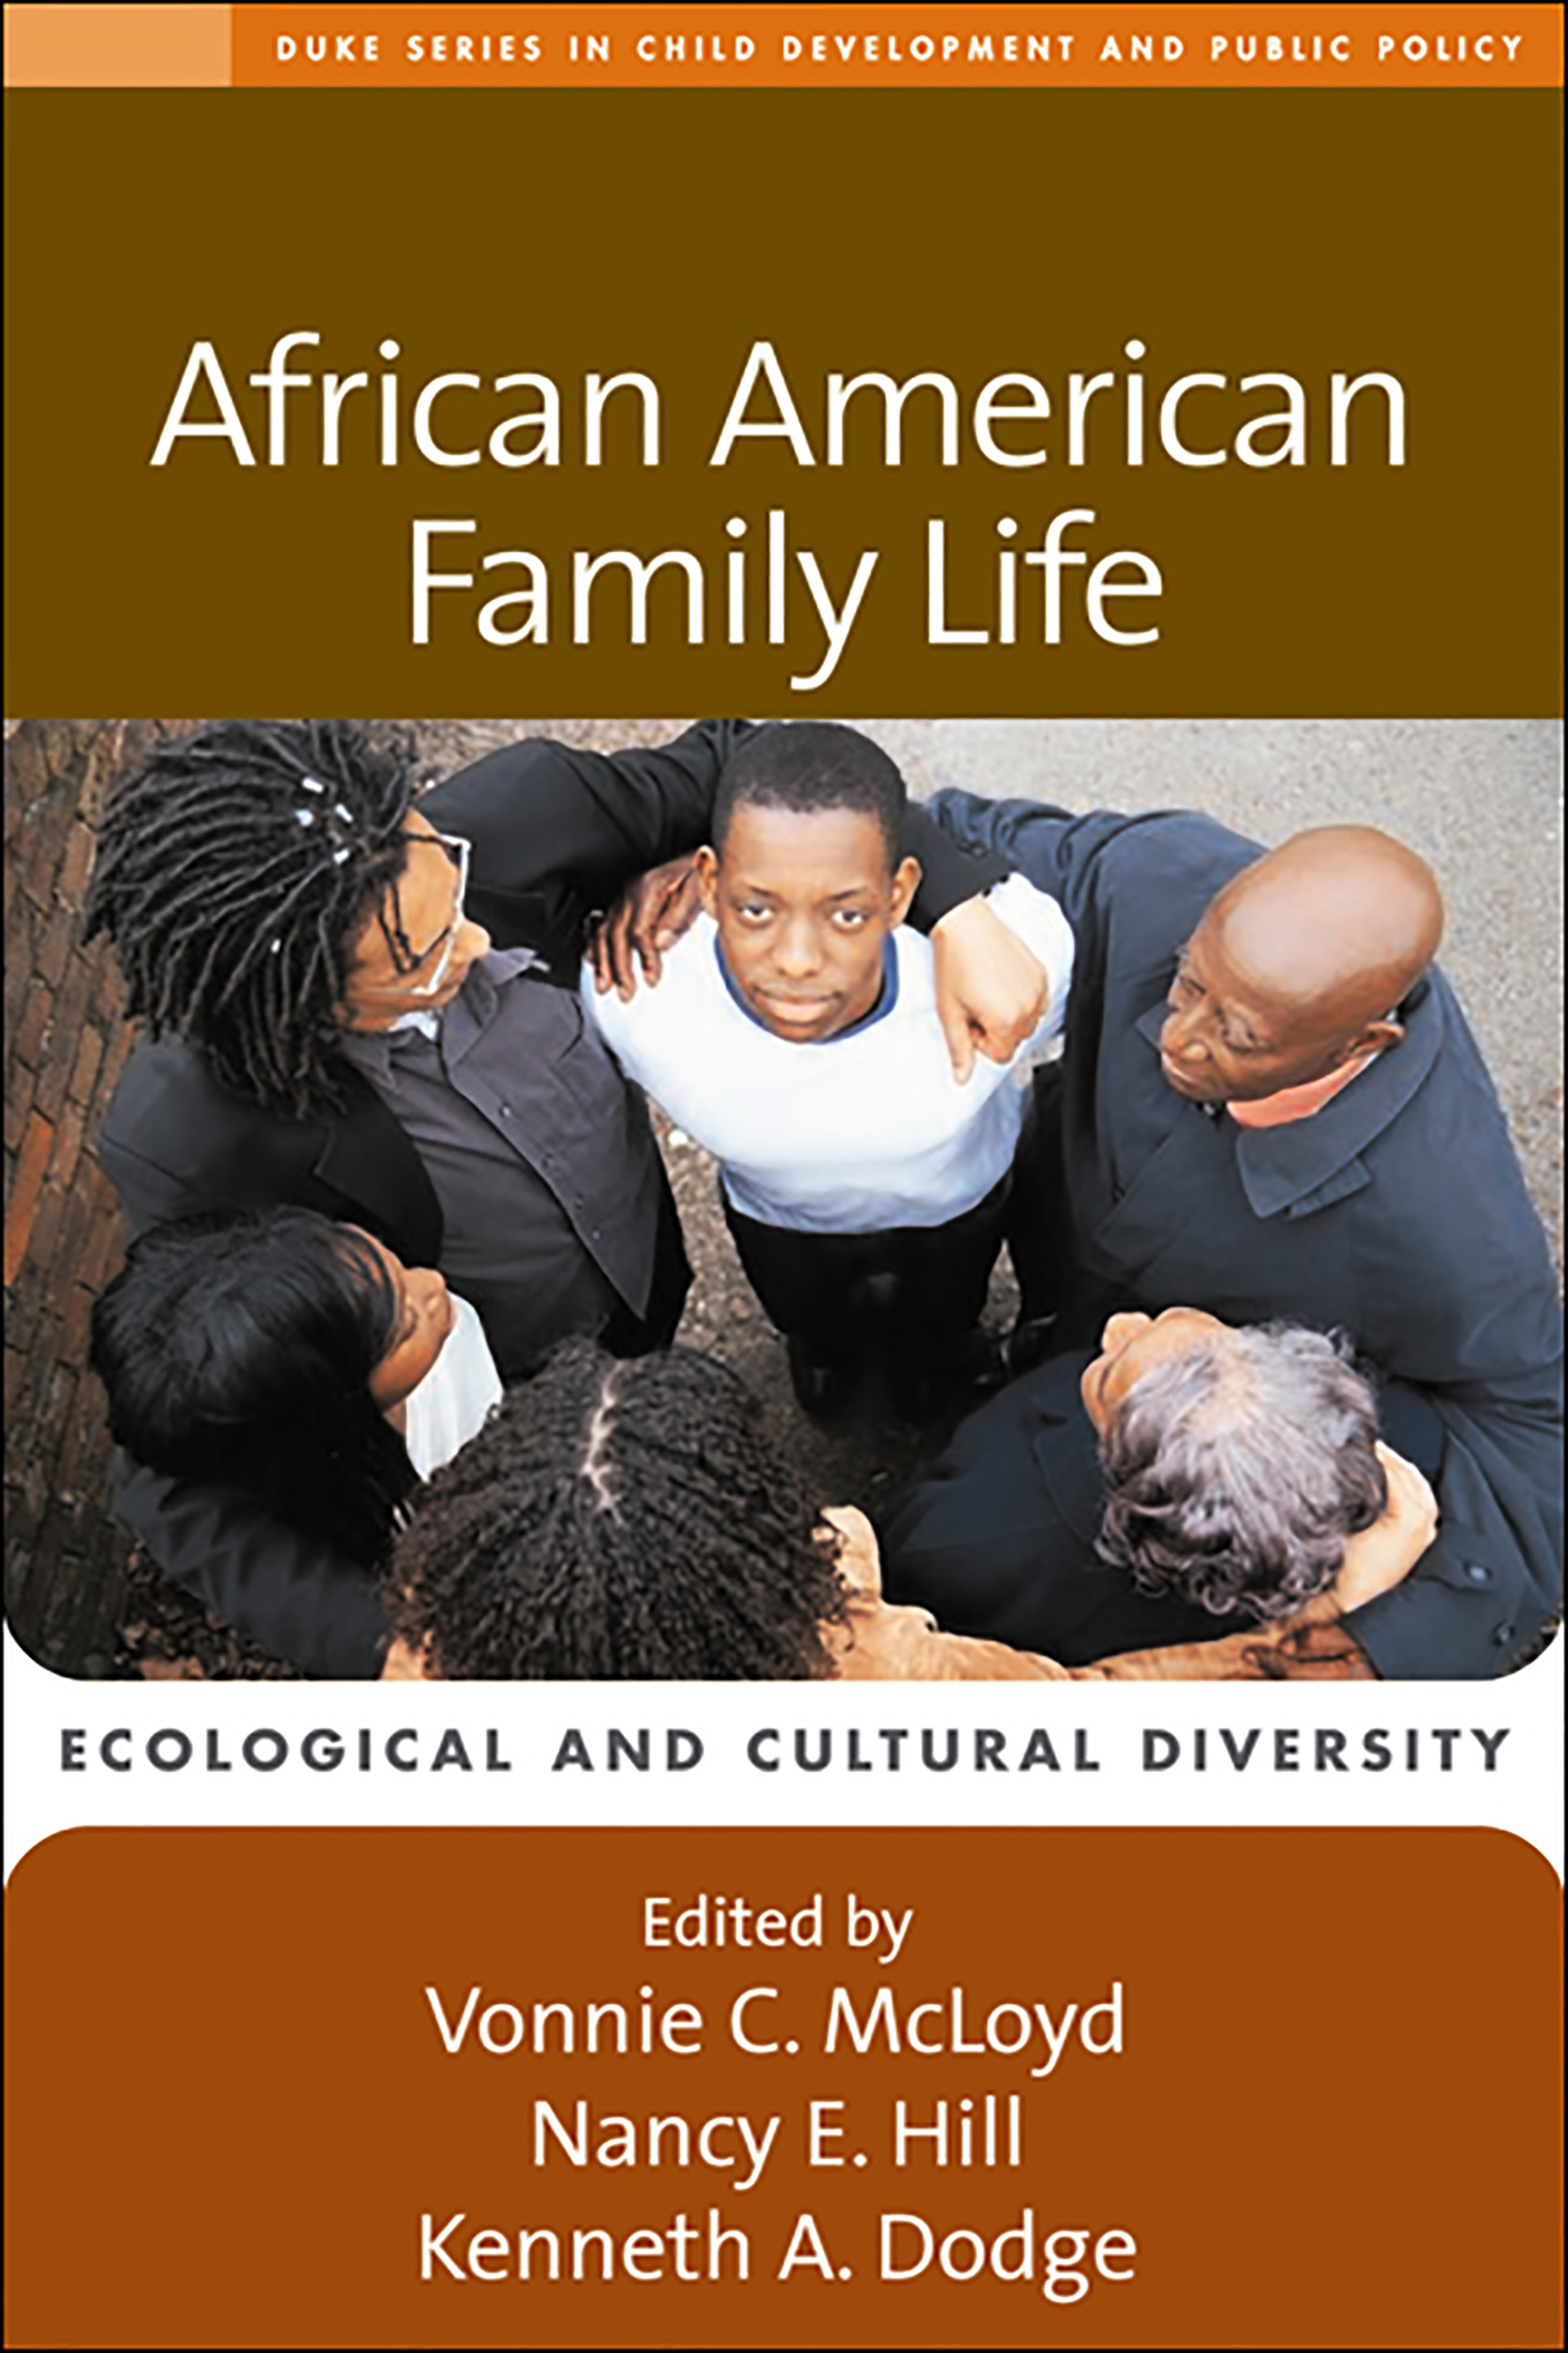 African American Family Life: Ecological and Cultural Diversity (Paperback) book cover